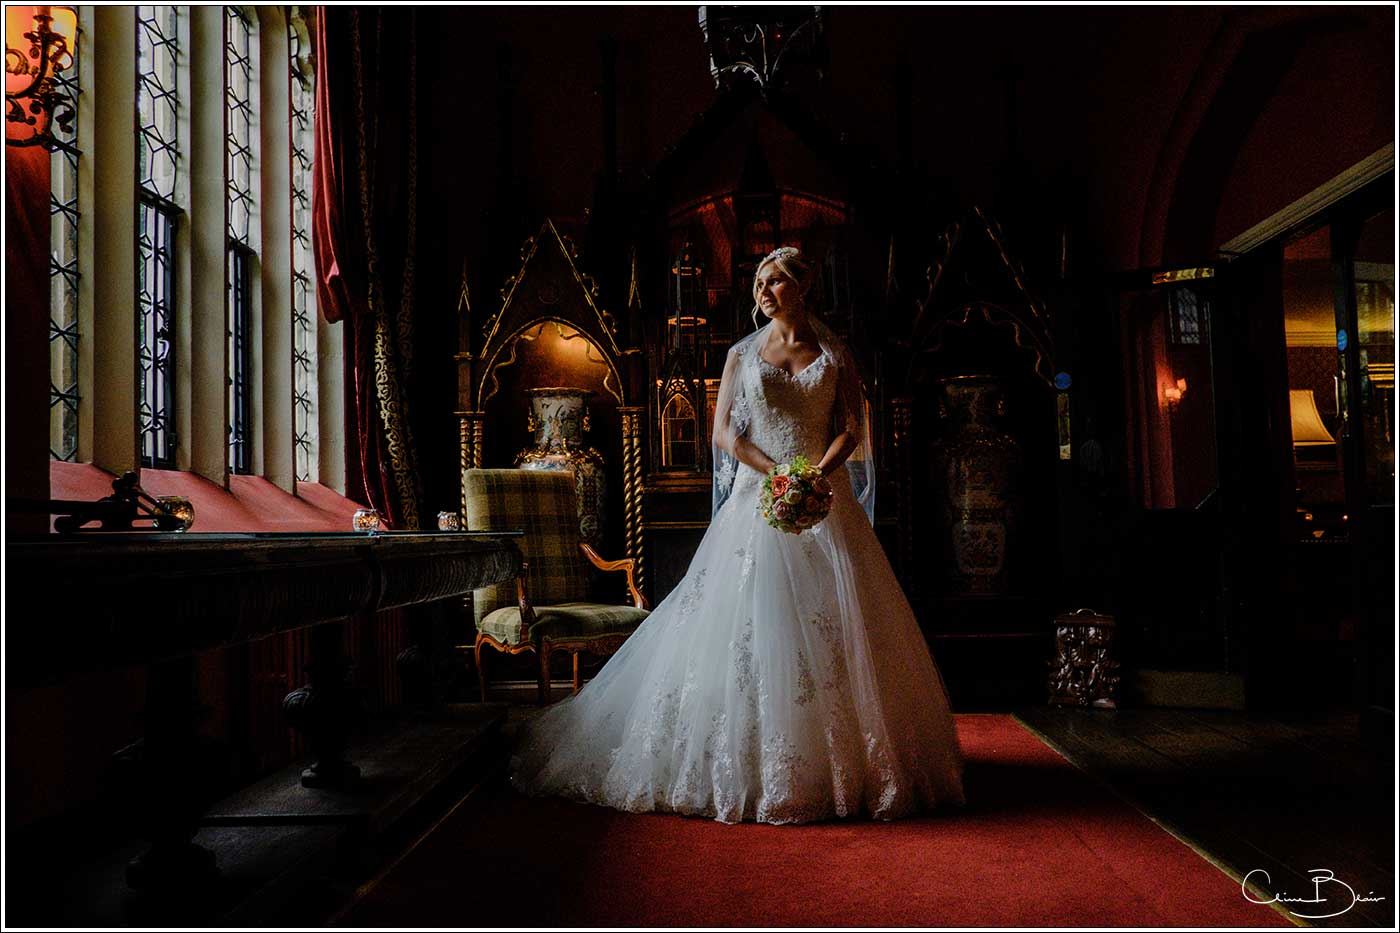 Coombe Abbey wedding photography showing bride in side lighting